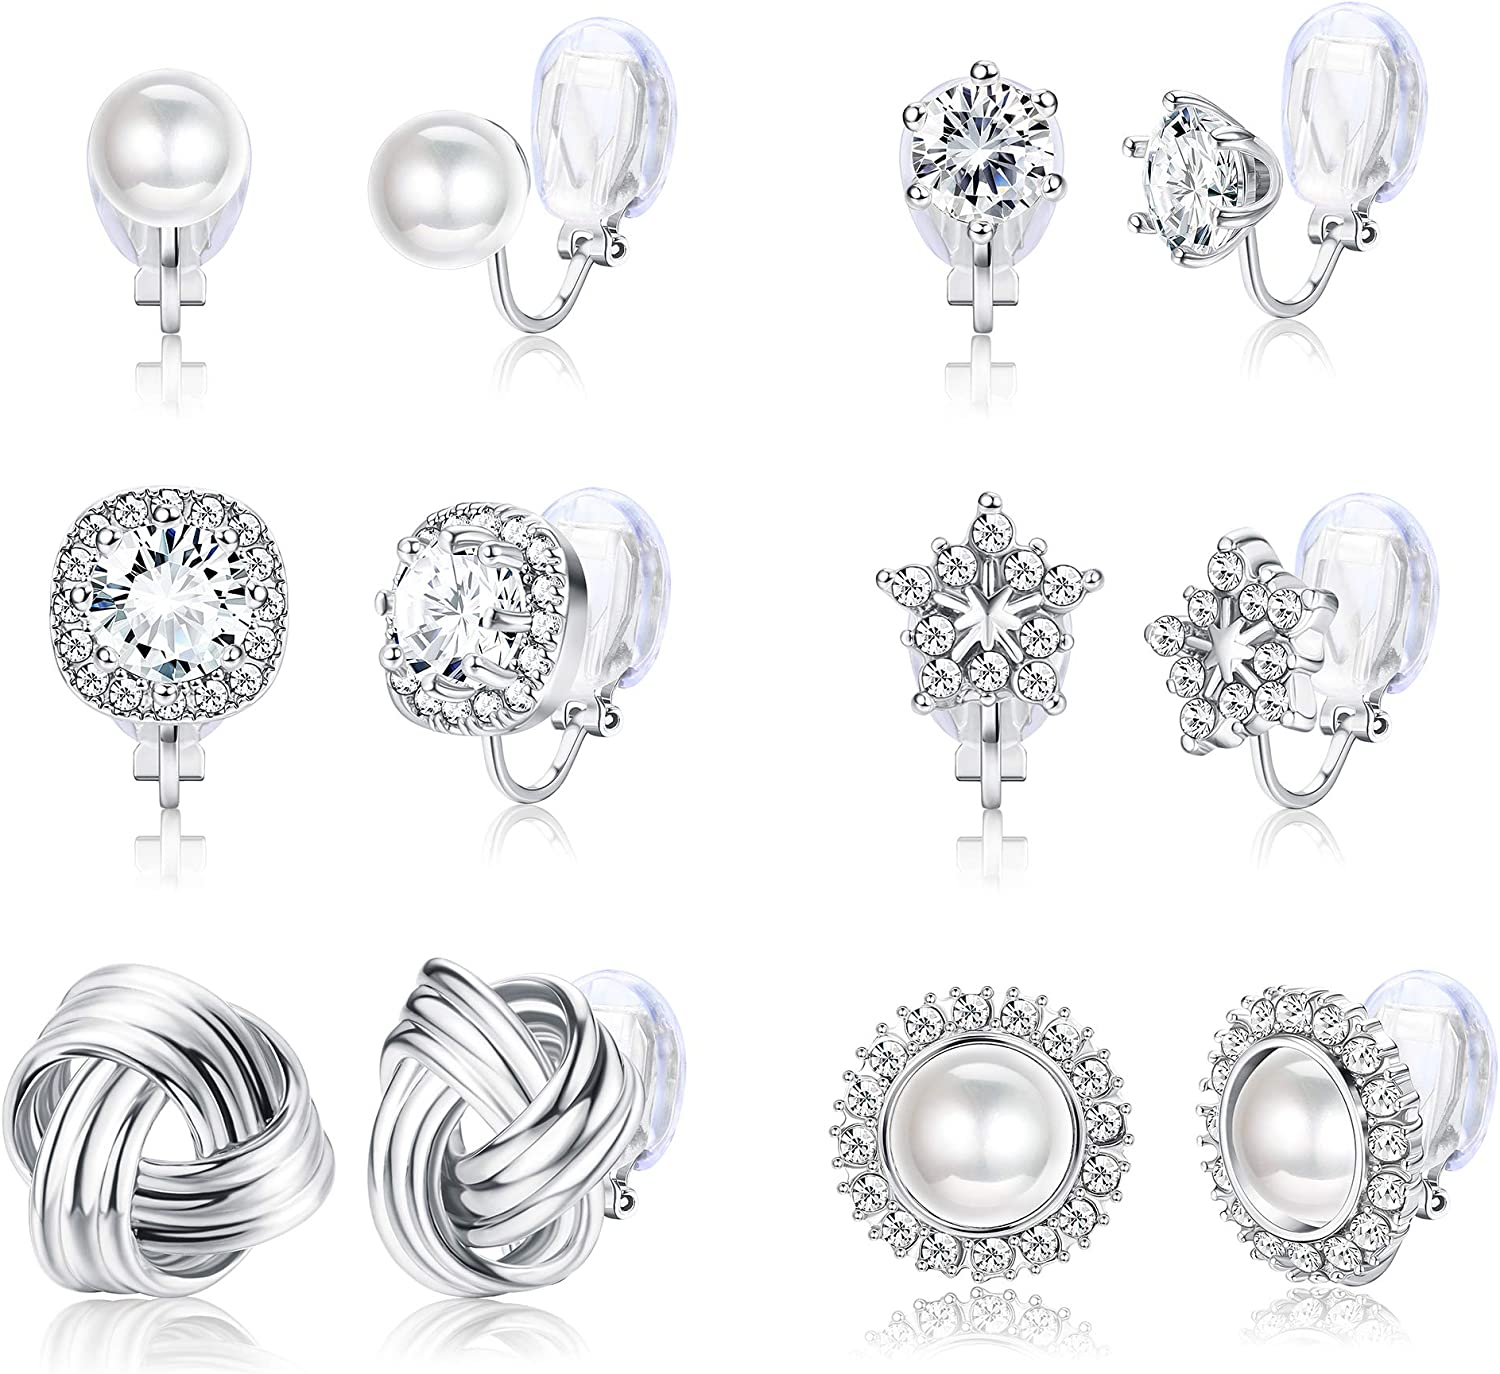 ORAZIO 6 Pairs Clip On Earrings for Women Round Faux Pearl CZ Twist Knot Fashion Non Pierced Clip On Earrings Set